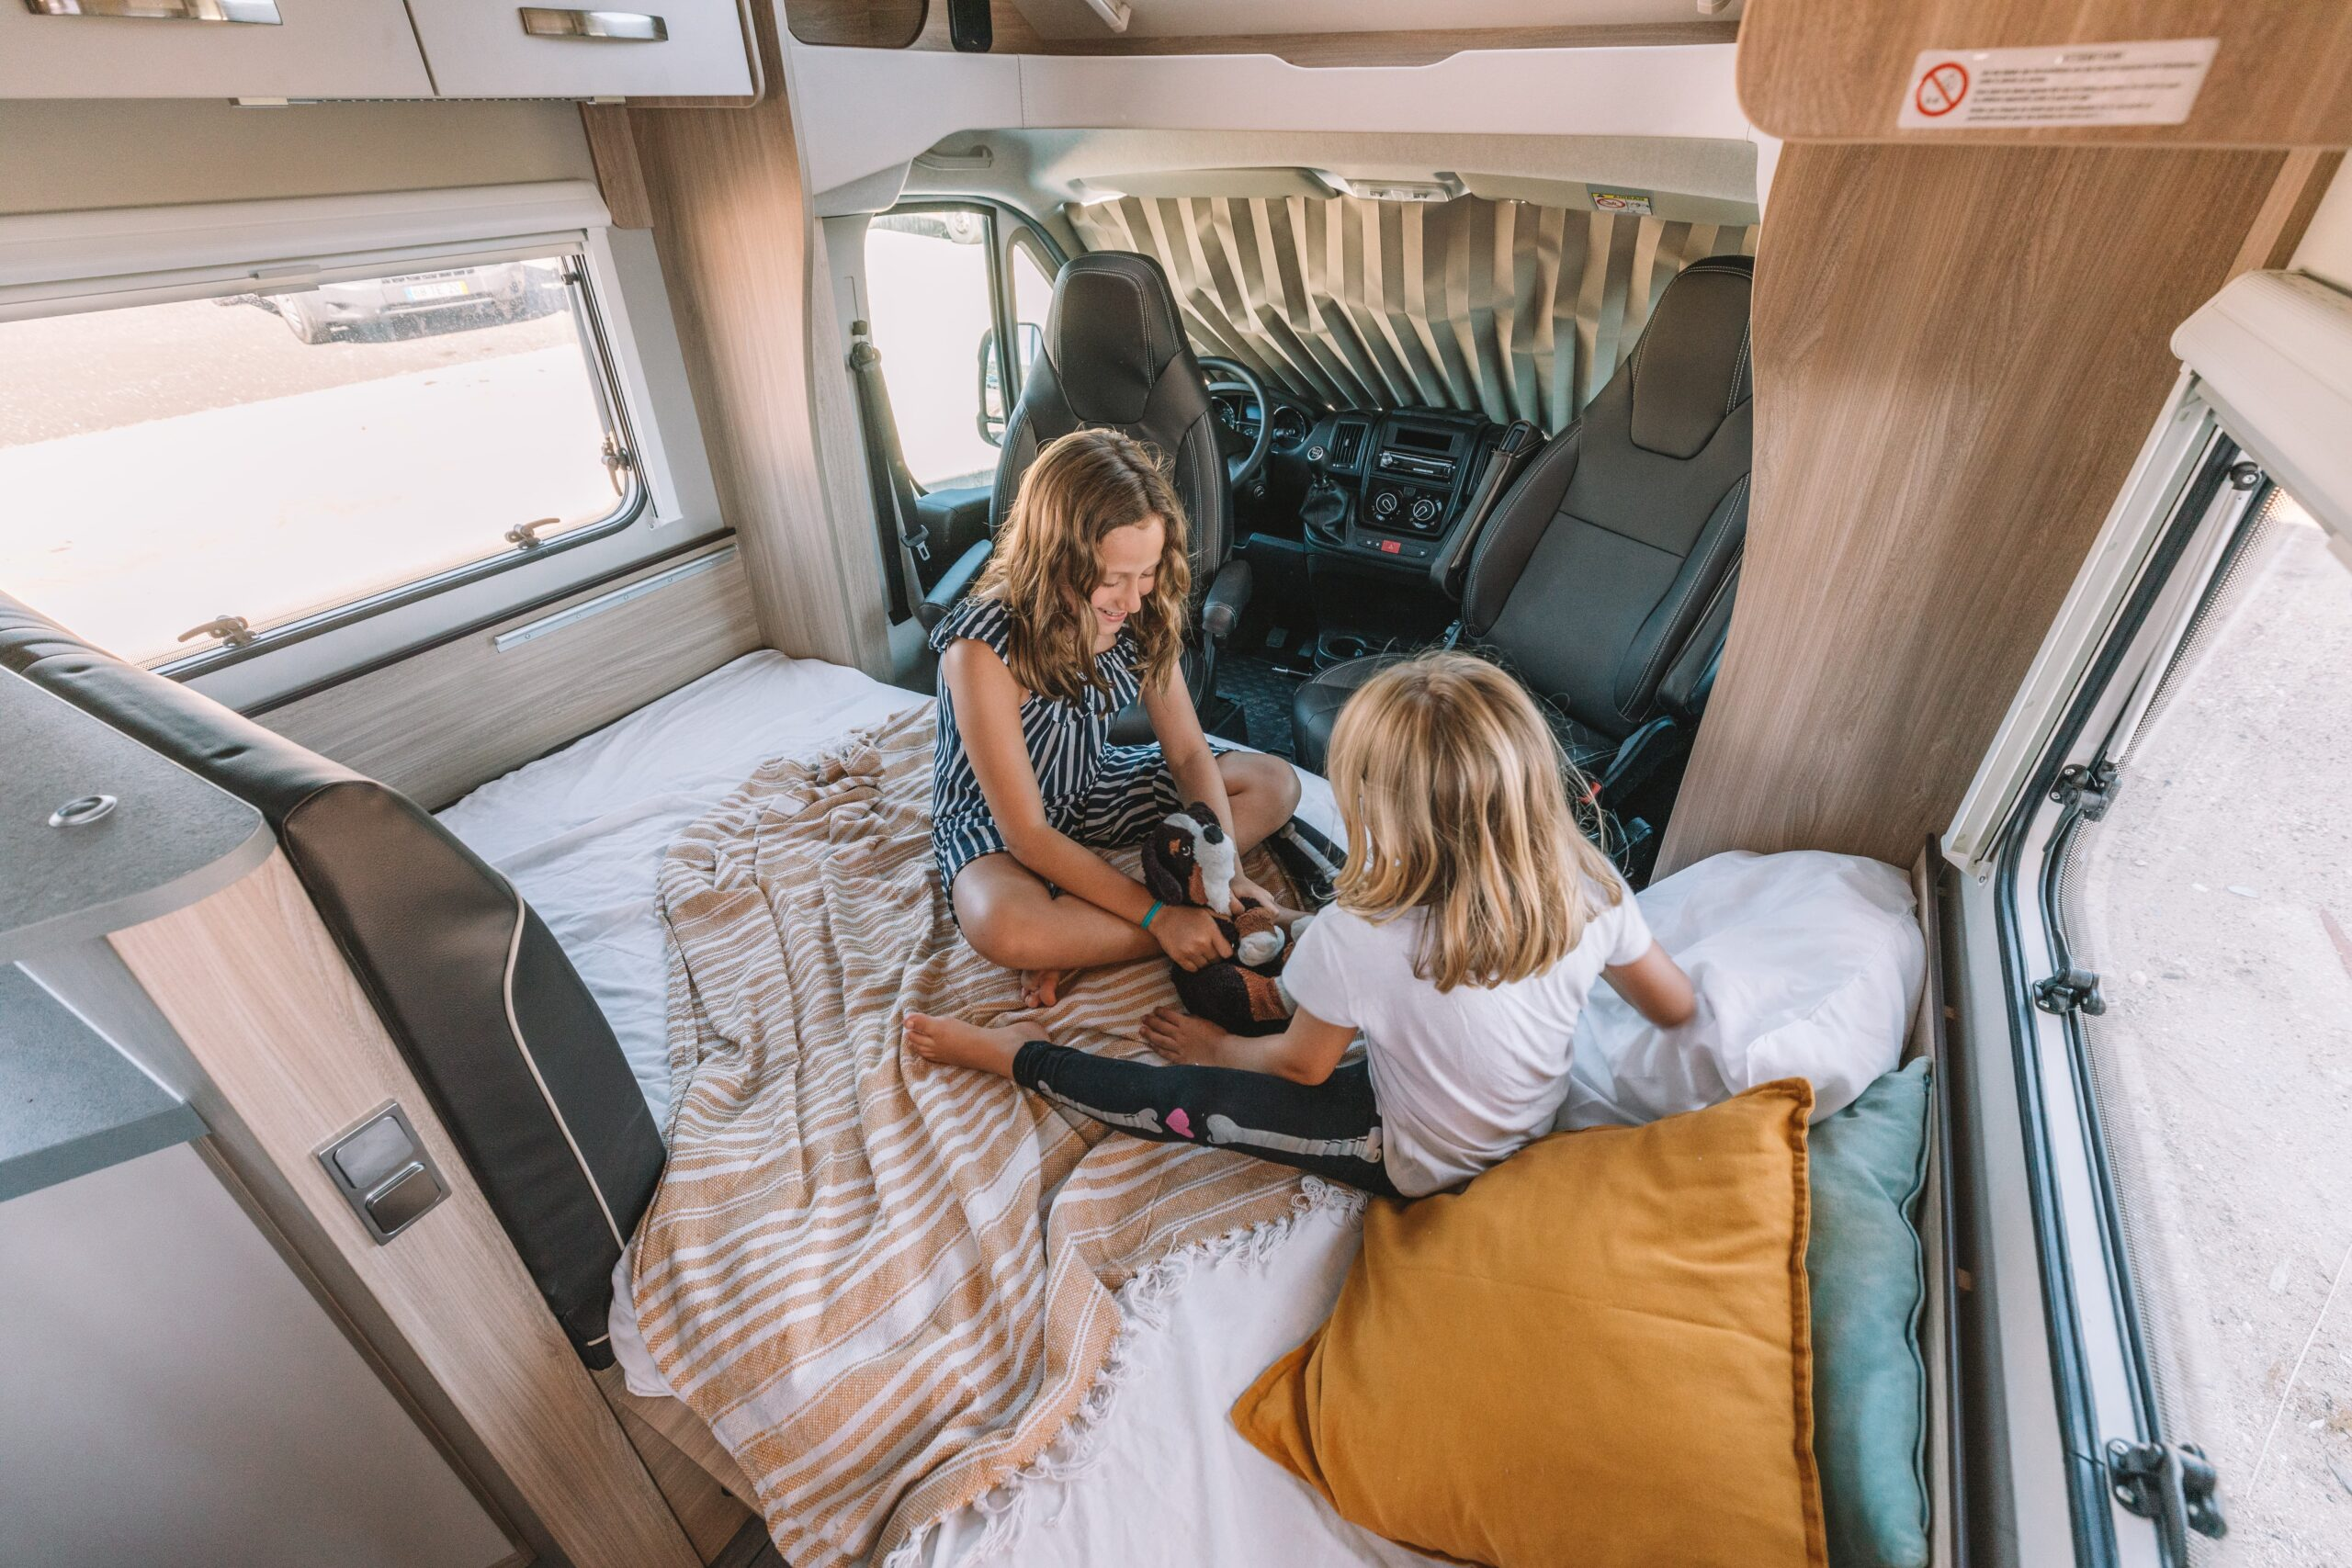 Camping with kids in an RV, two girls playing on the bed